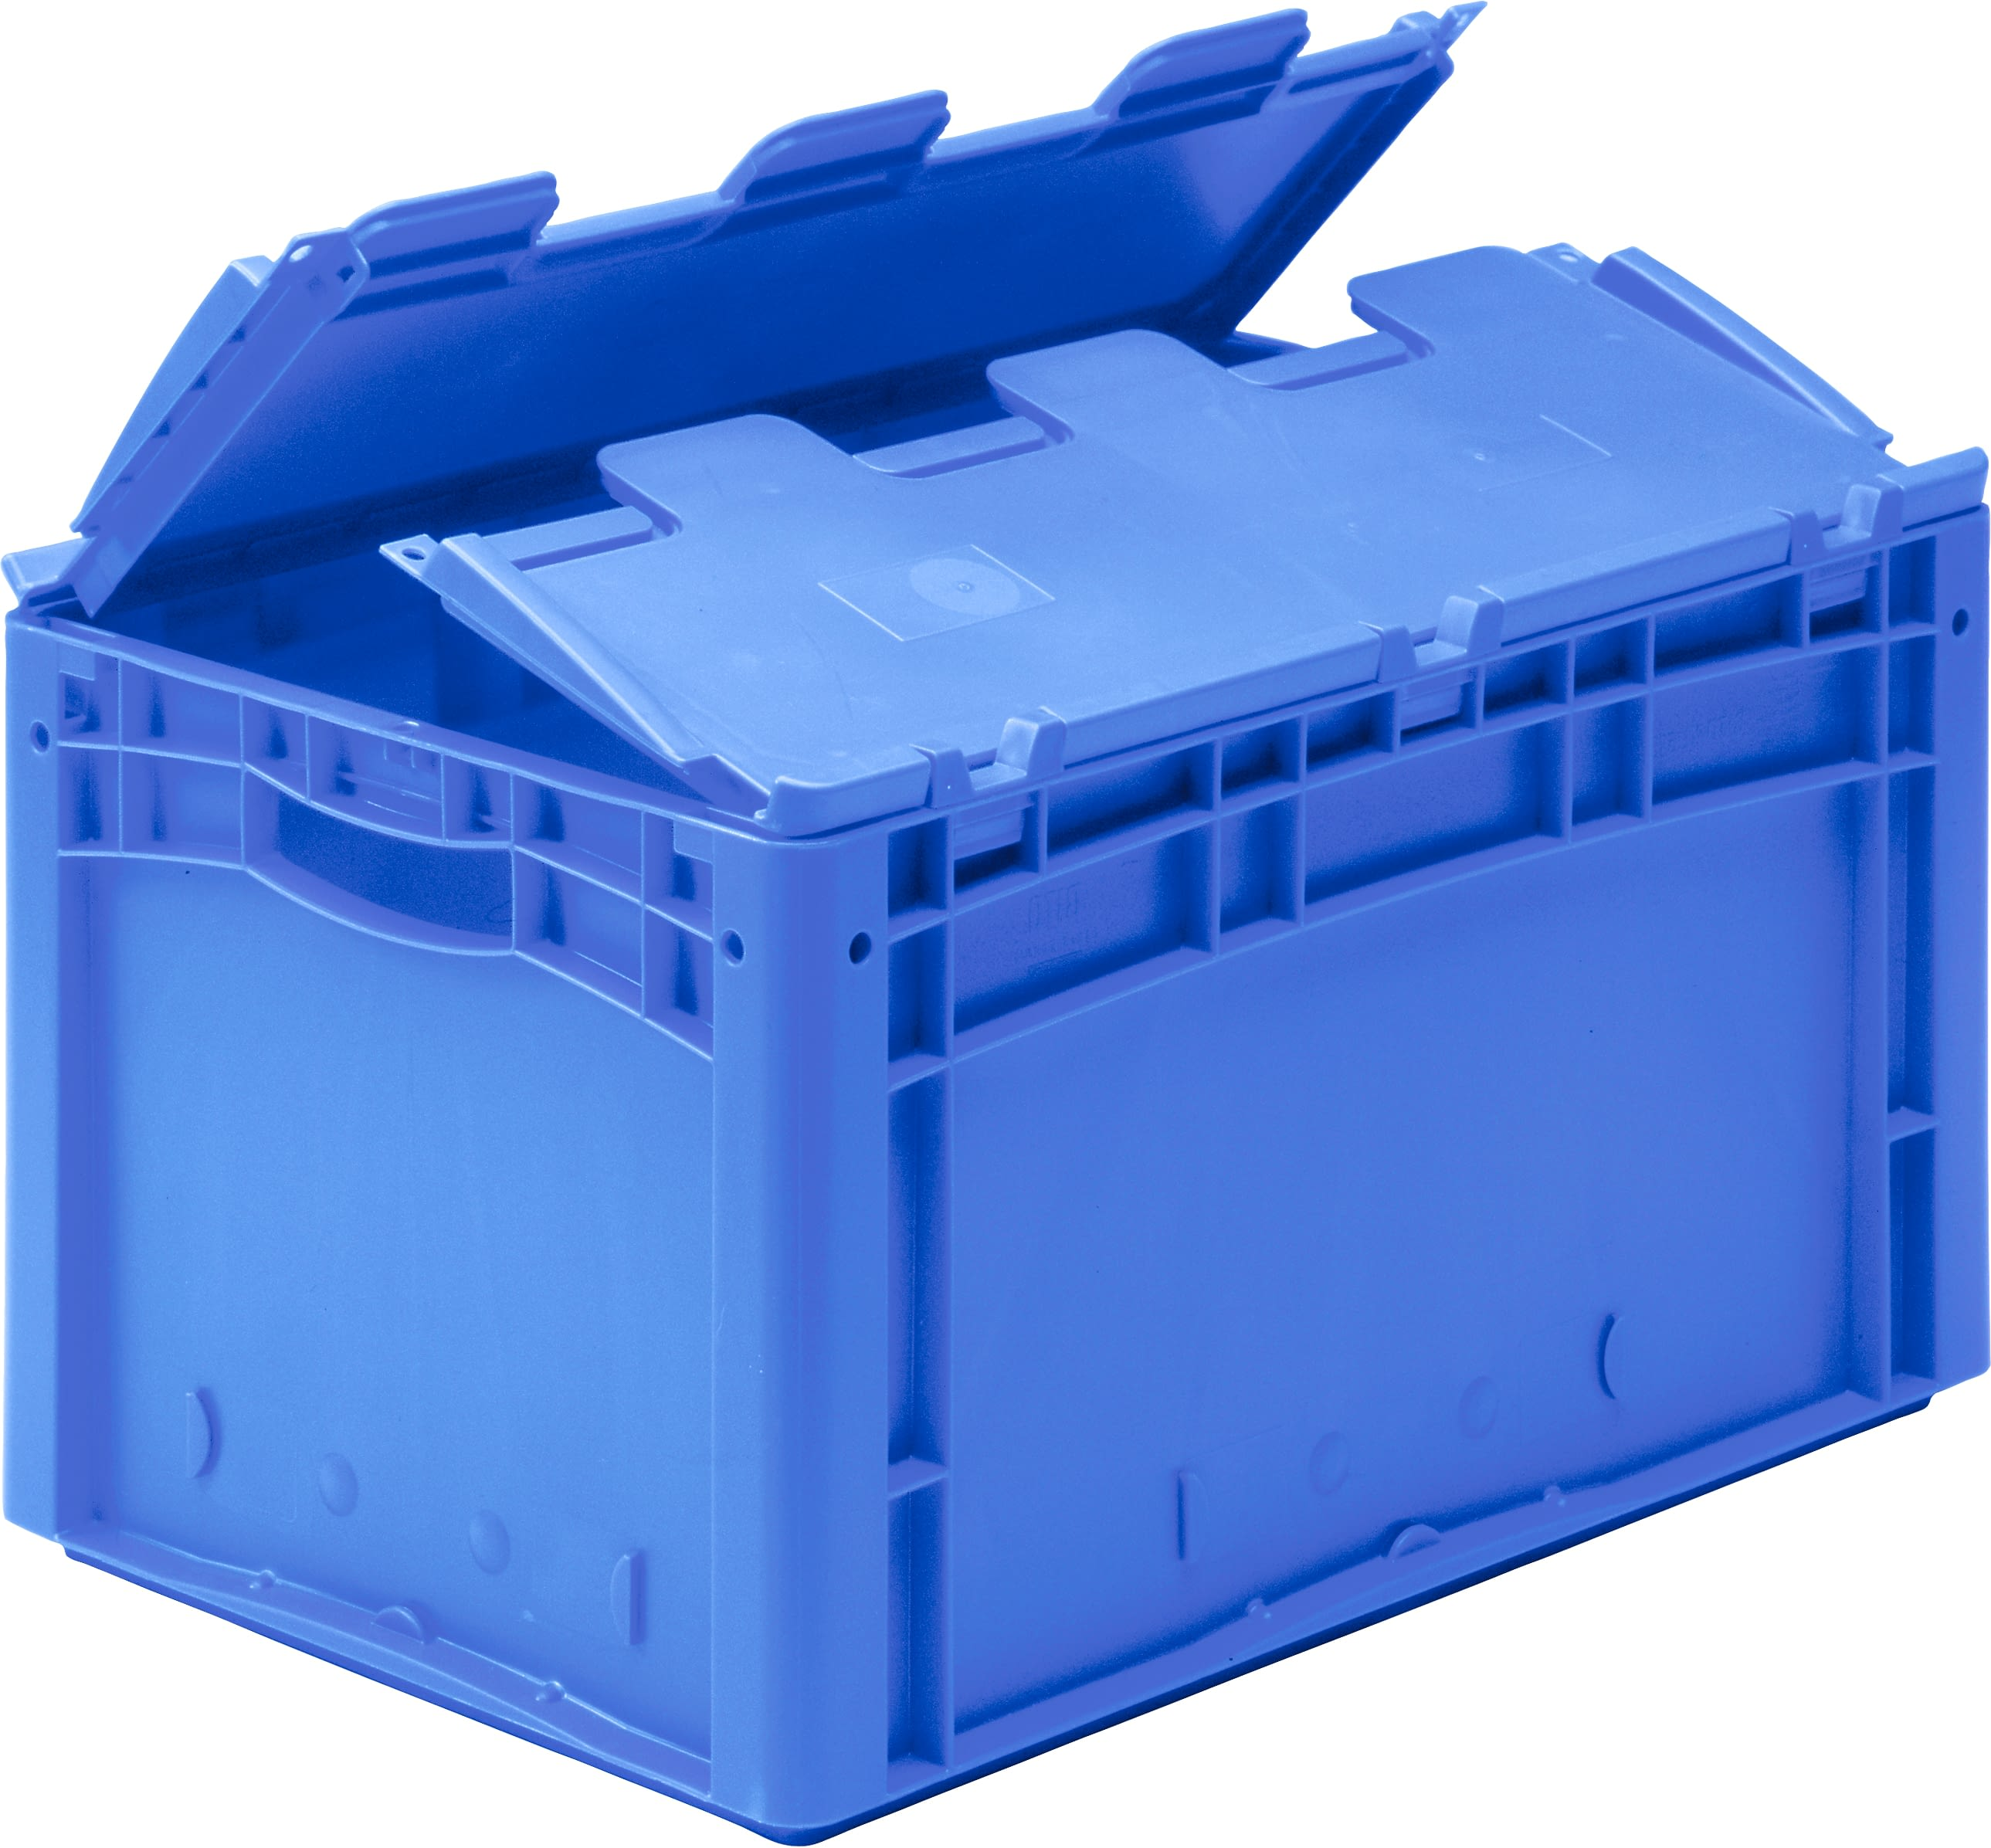 European size stacking containers XL, solid sides, open grips, hinged two part lid, strap-sealable, blue, 43-30406